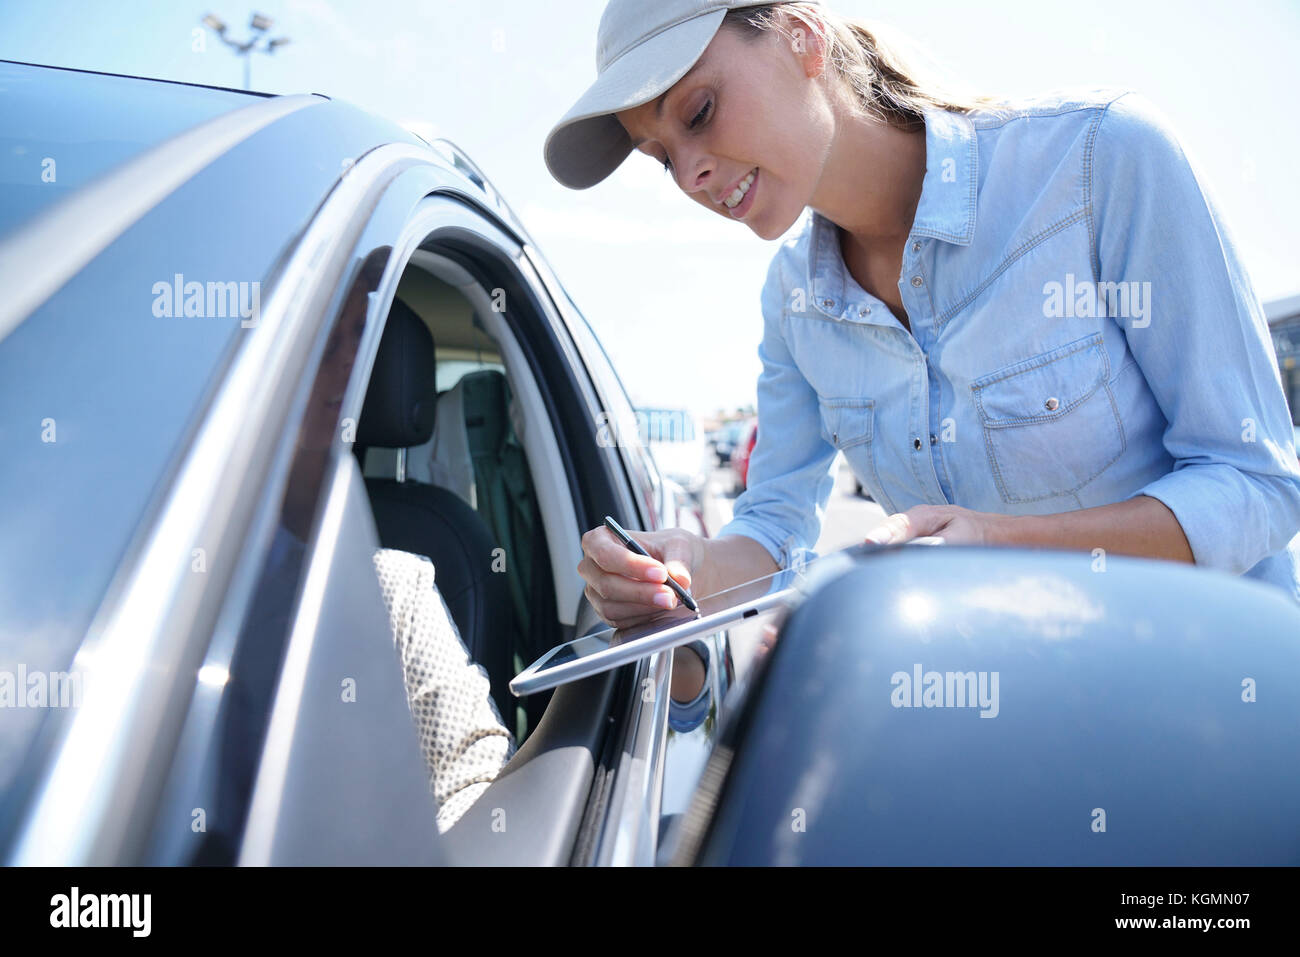 Woman stopping car driver for customer survey - Stock Image